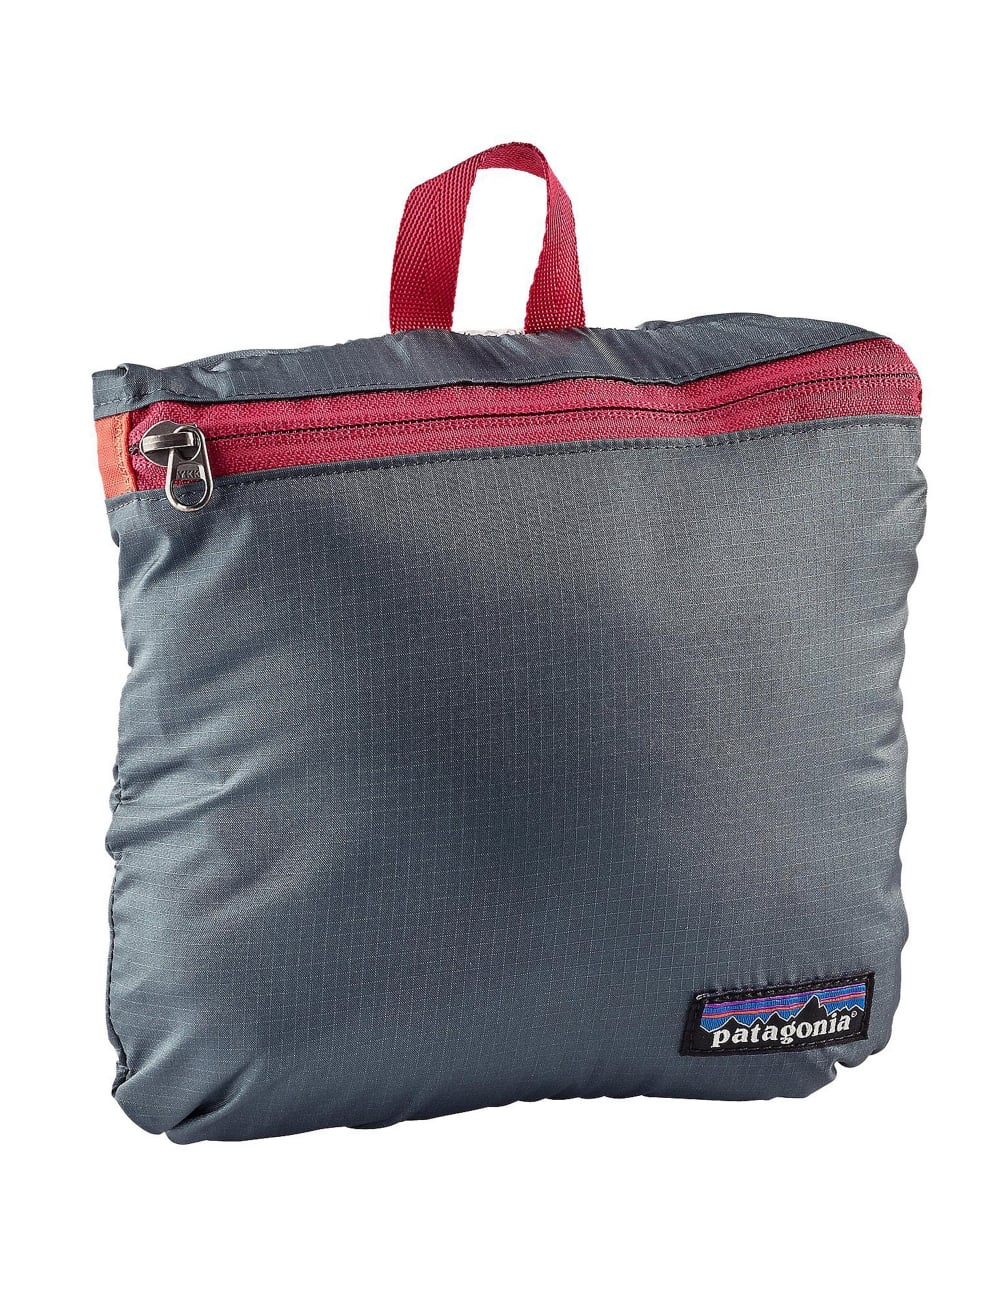 Patagonia Lightweight Travel Tote Bag - Black - Accessories from Fat ... 76f6d1a8730d0